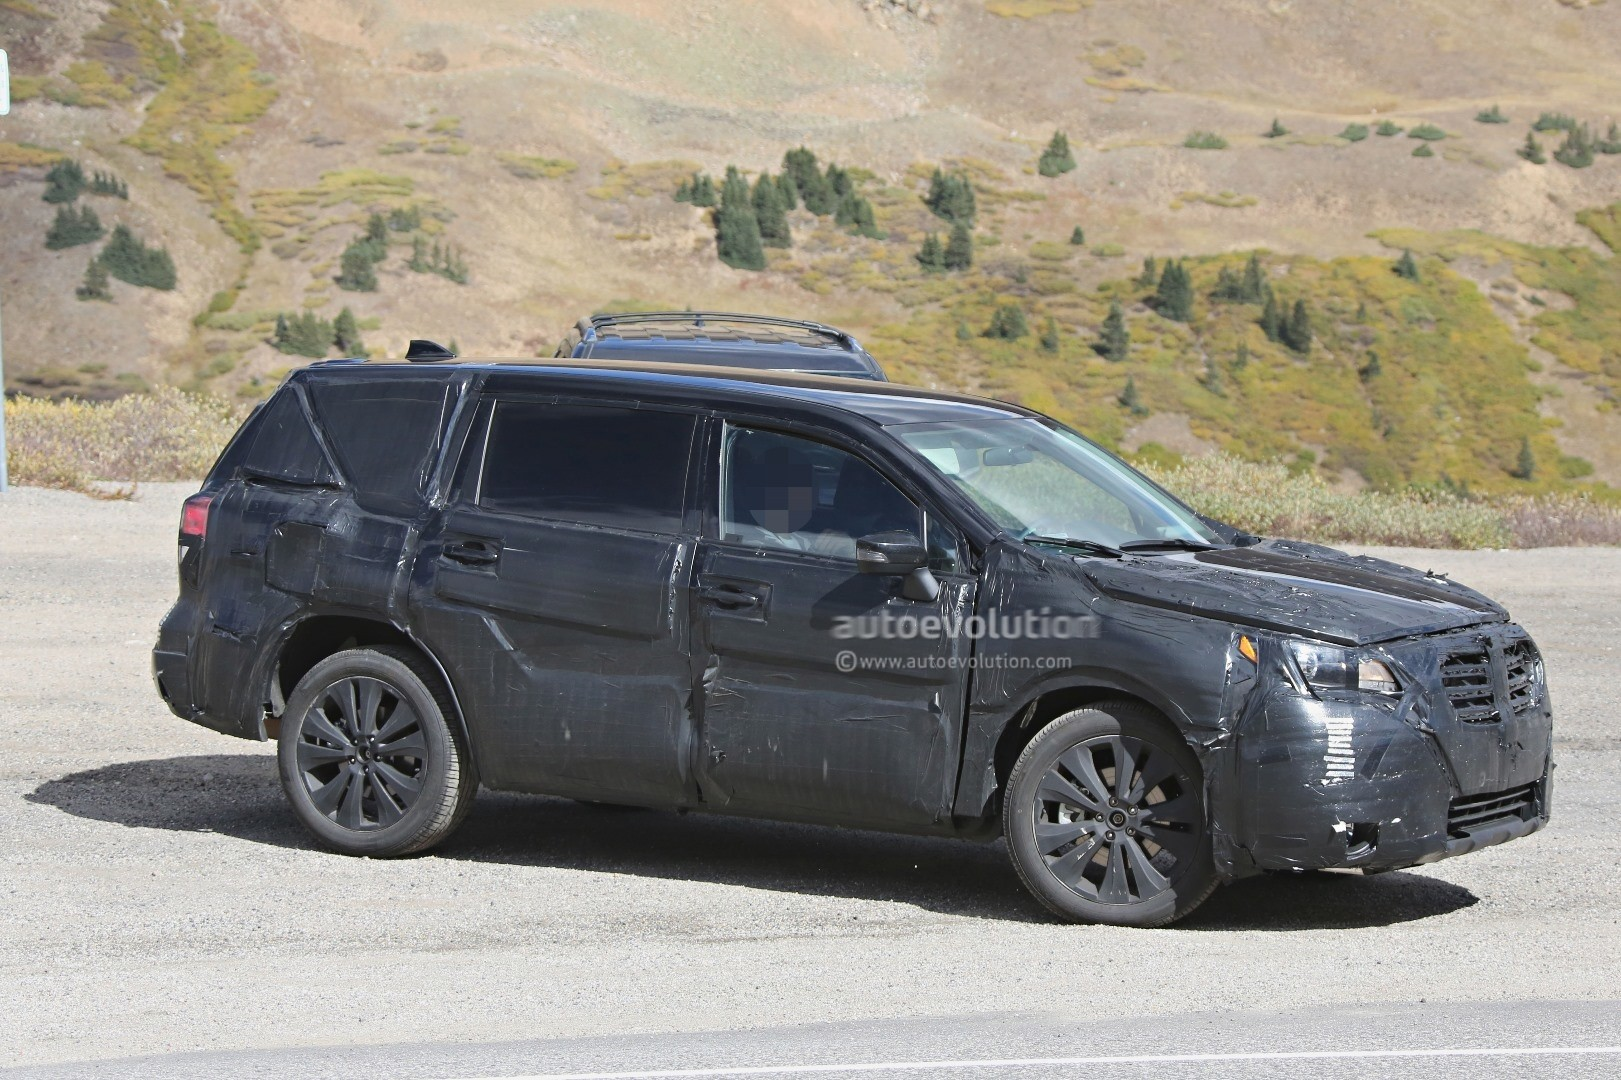 2019 Subaru Tribeca Heir Spied Benchmarking Against Mazda ...